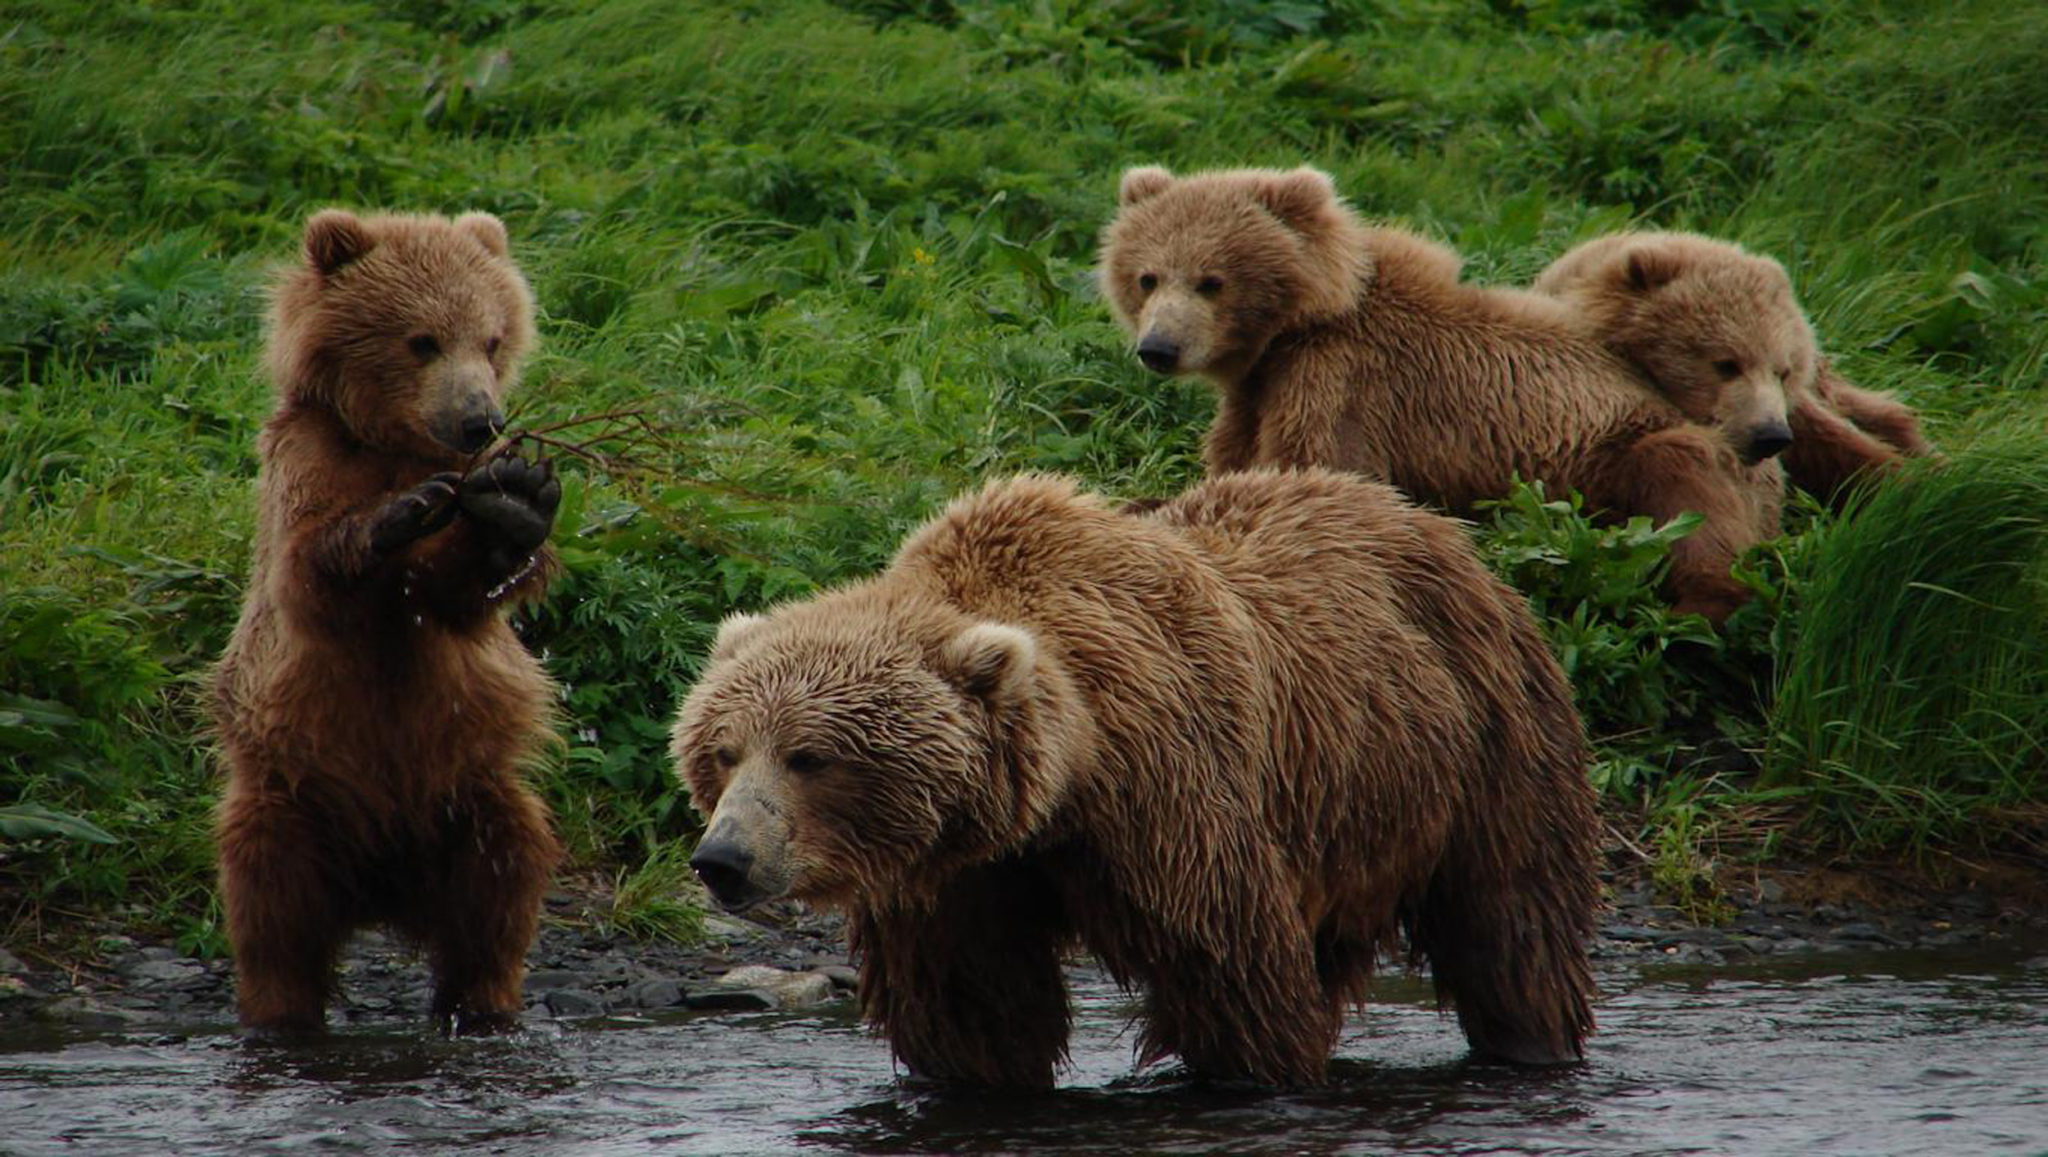 grizzly bears vs brown